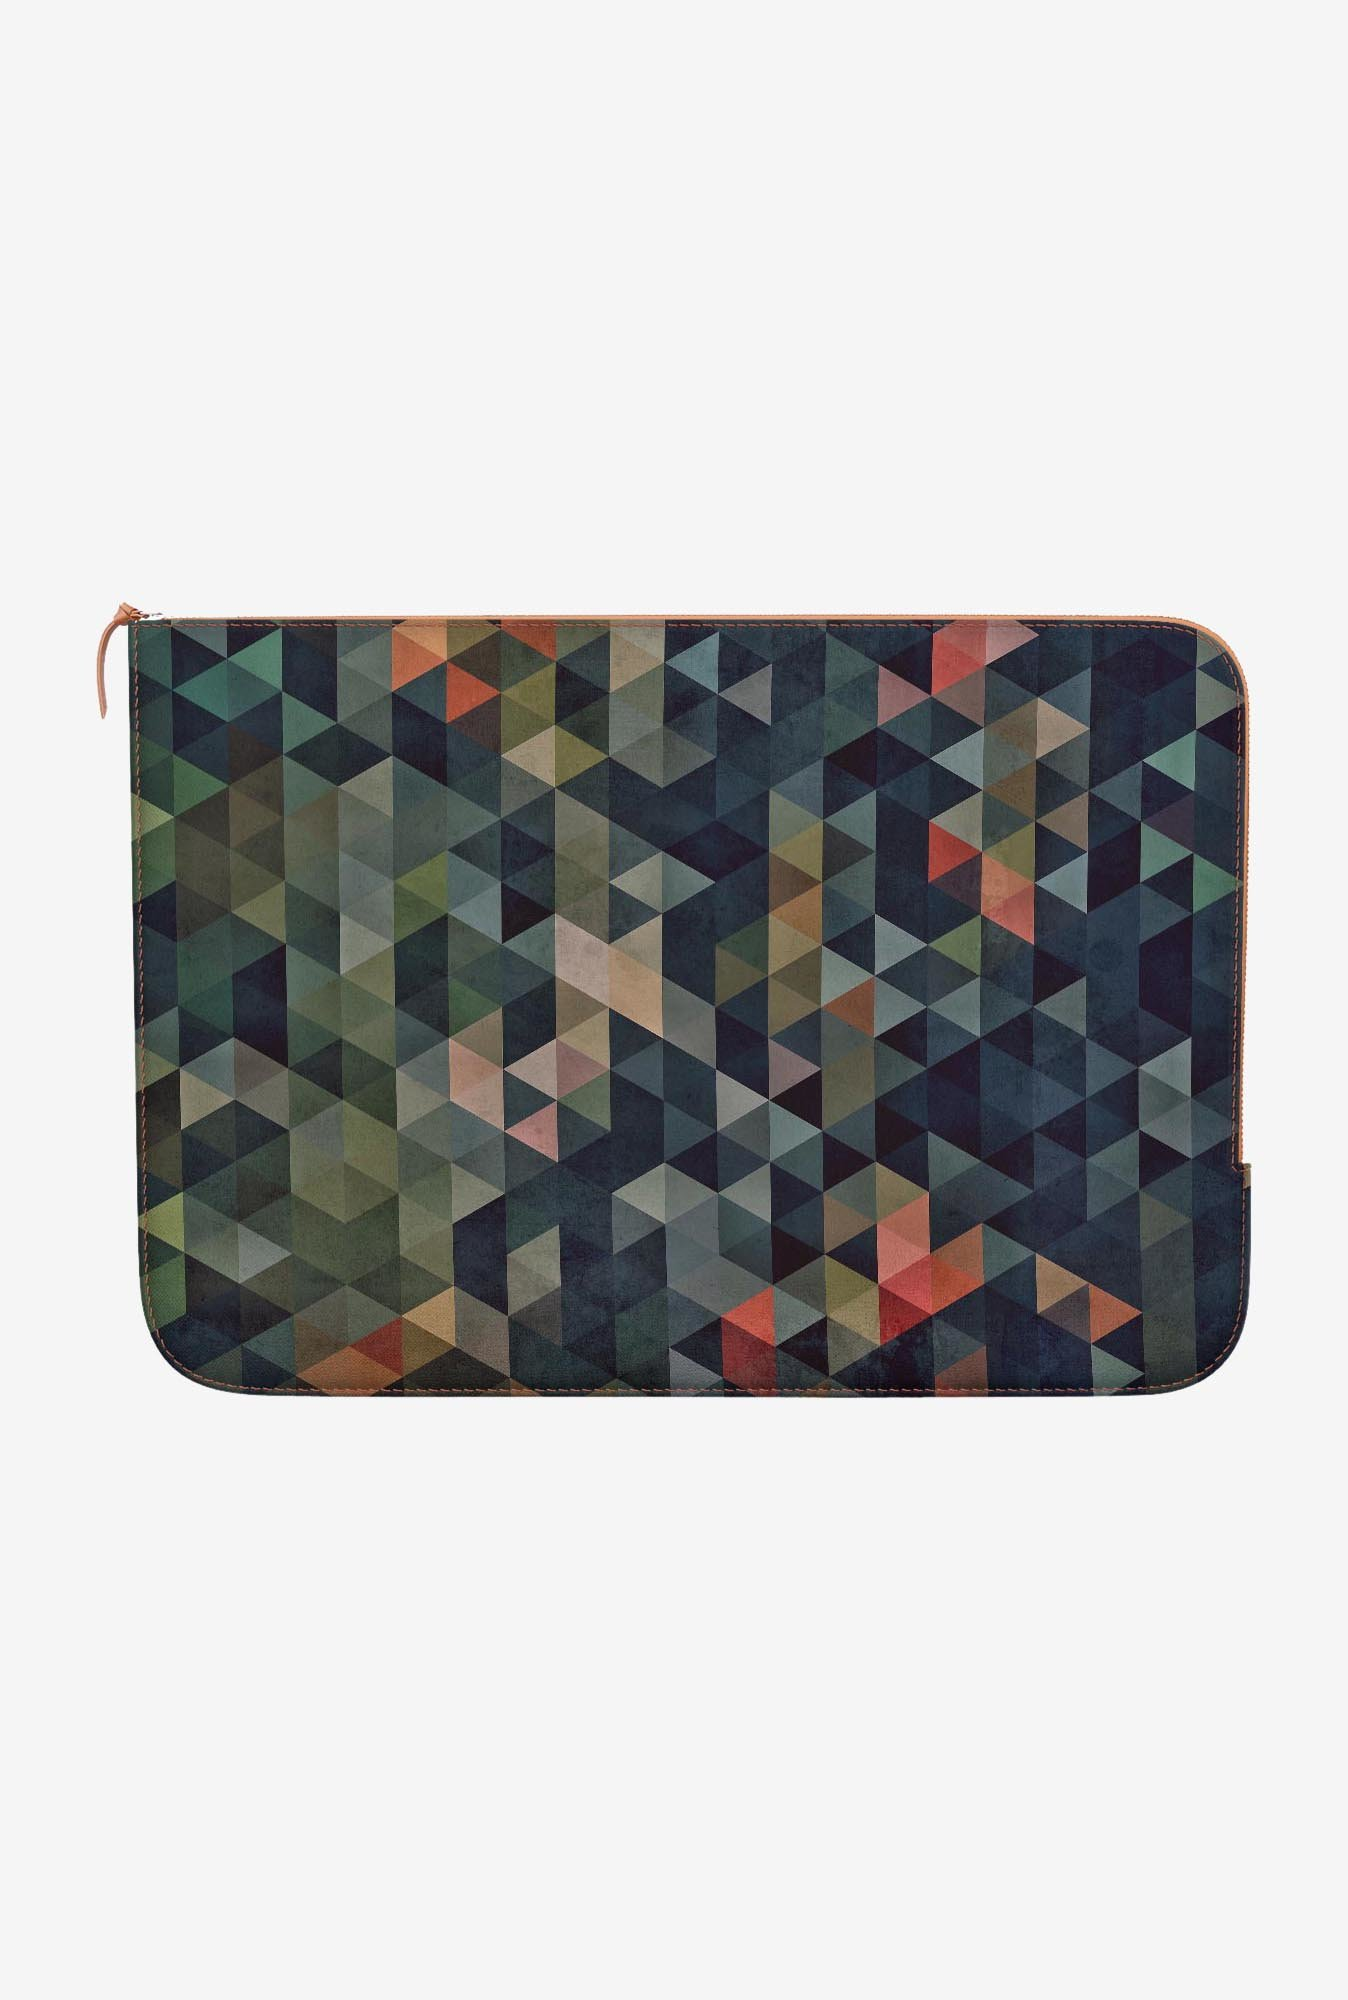 DailyObjects ymprycyss MacBook Pro 13 Zippered Sleeve